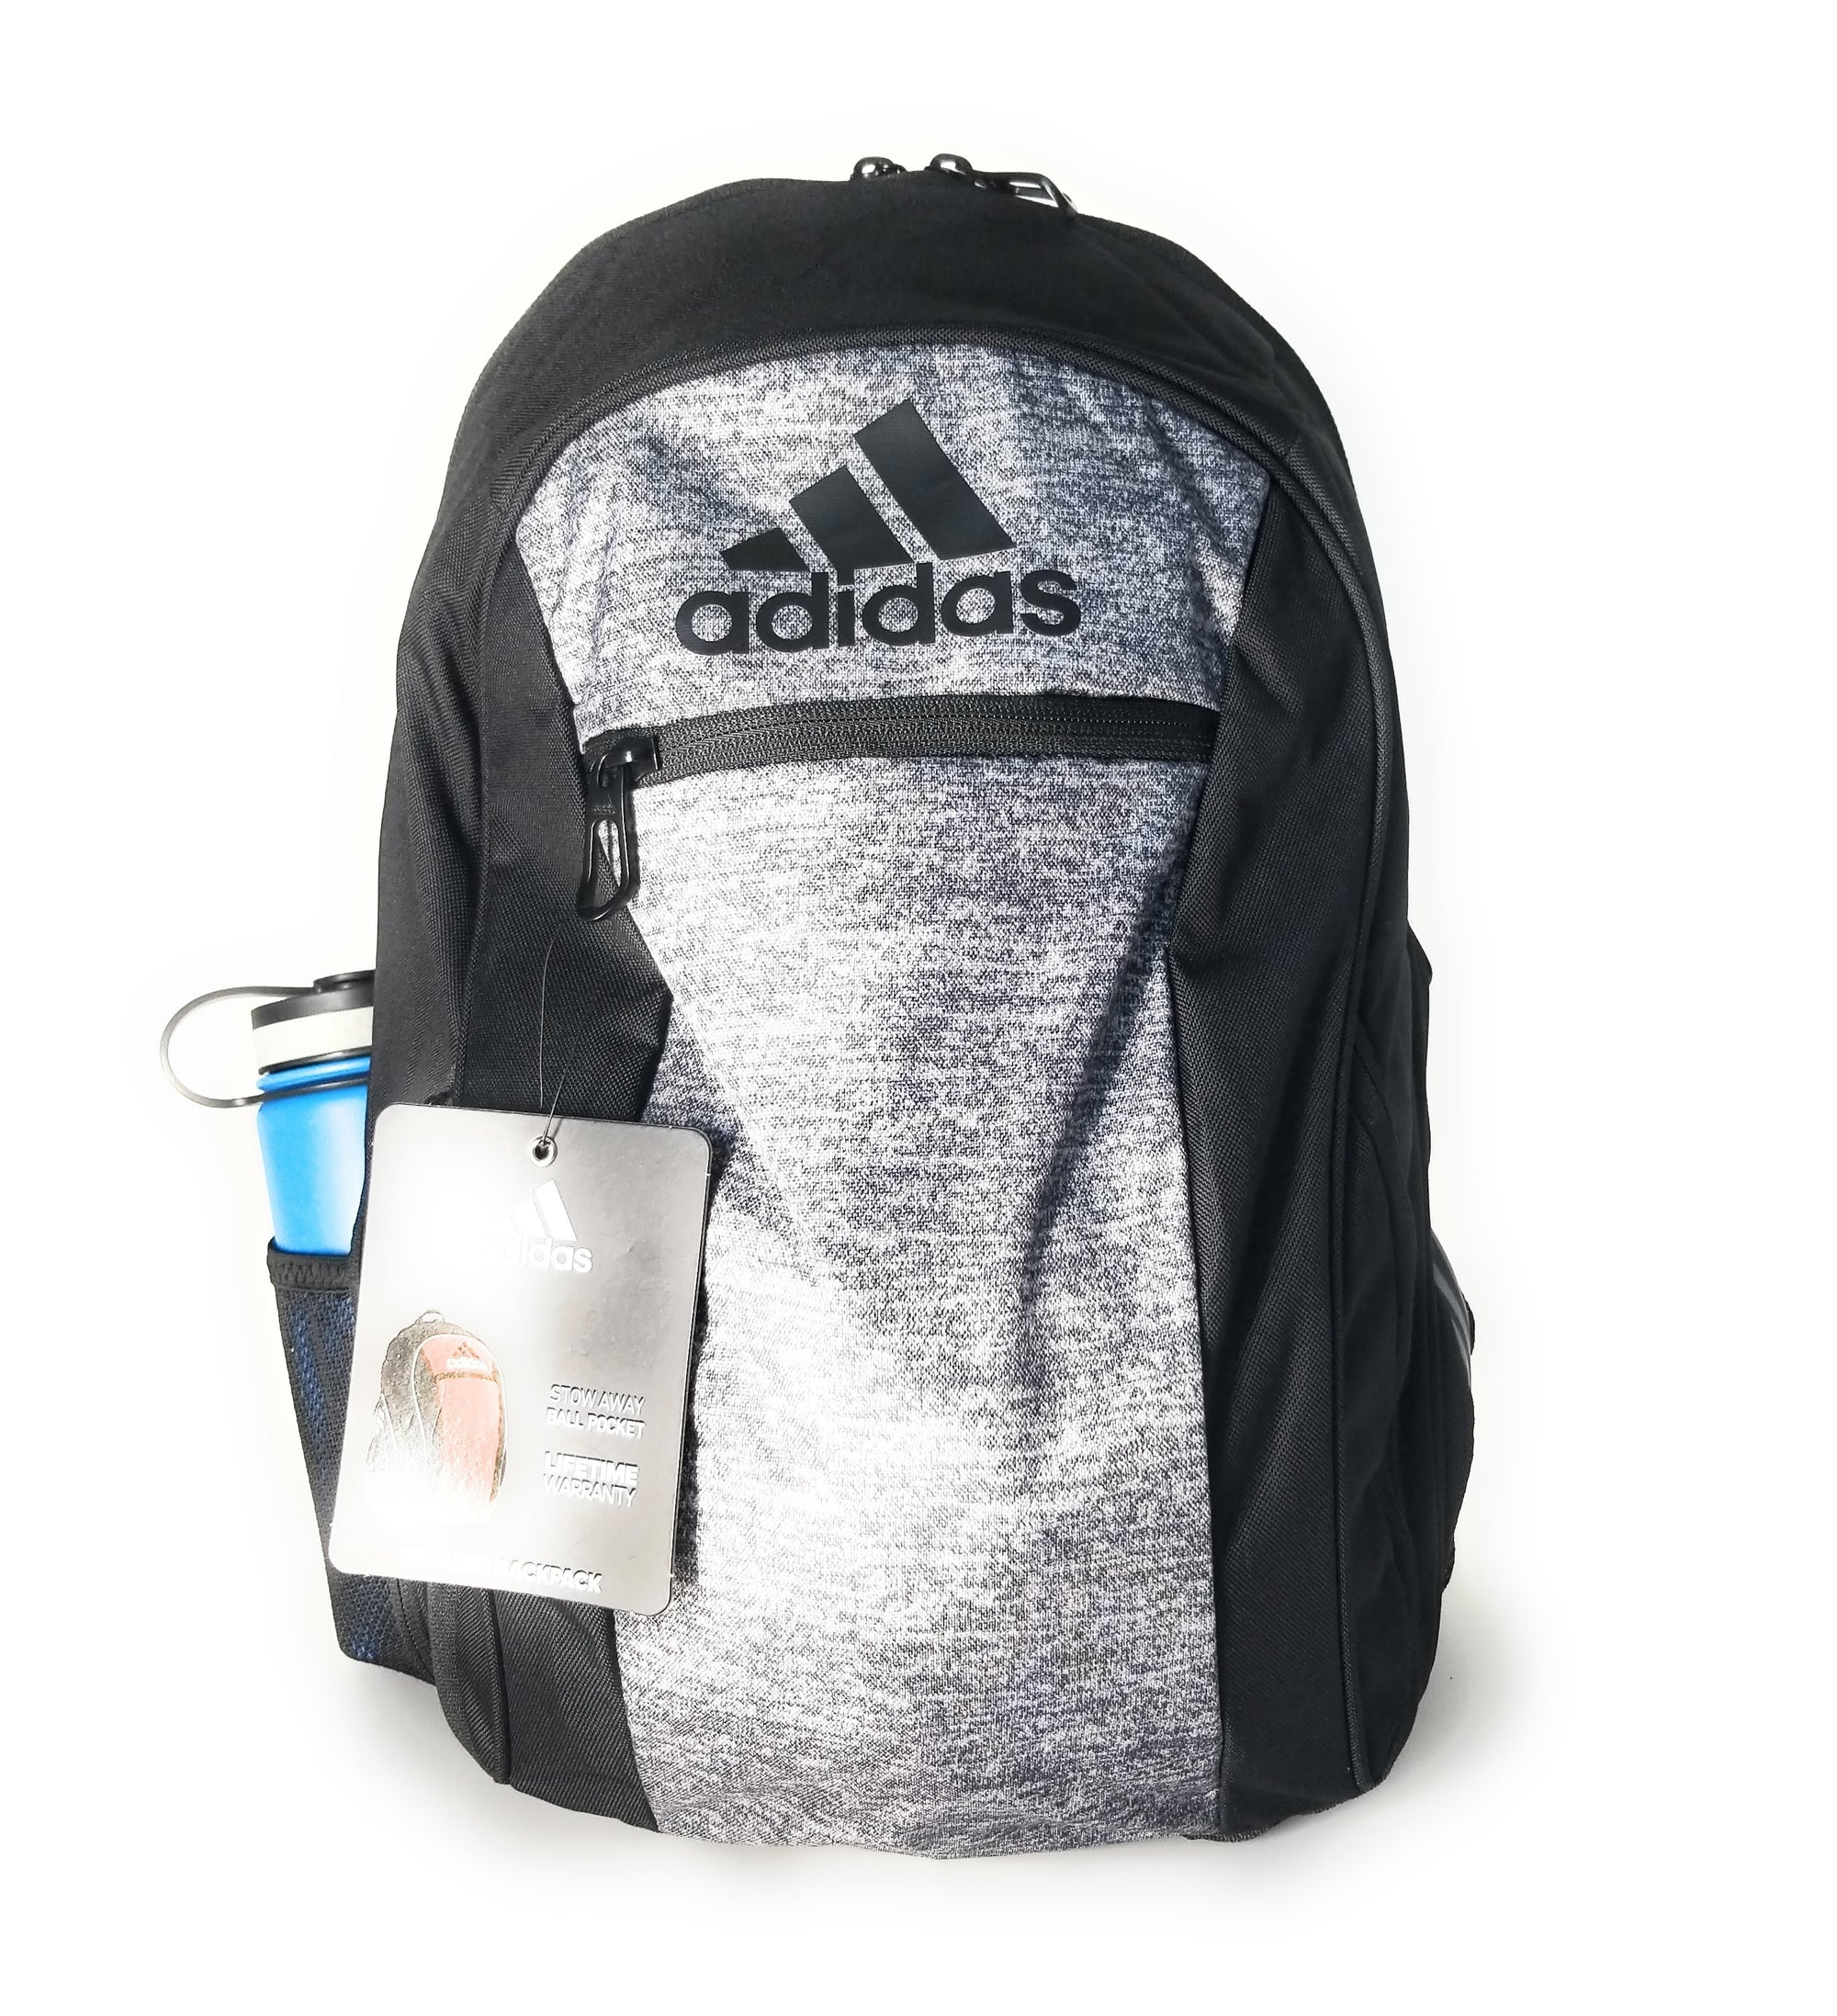 Adidas Estadio IV Ballpack - Gray